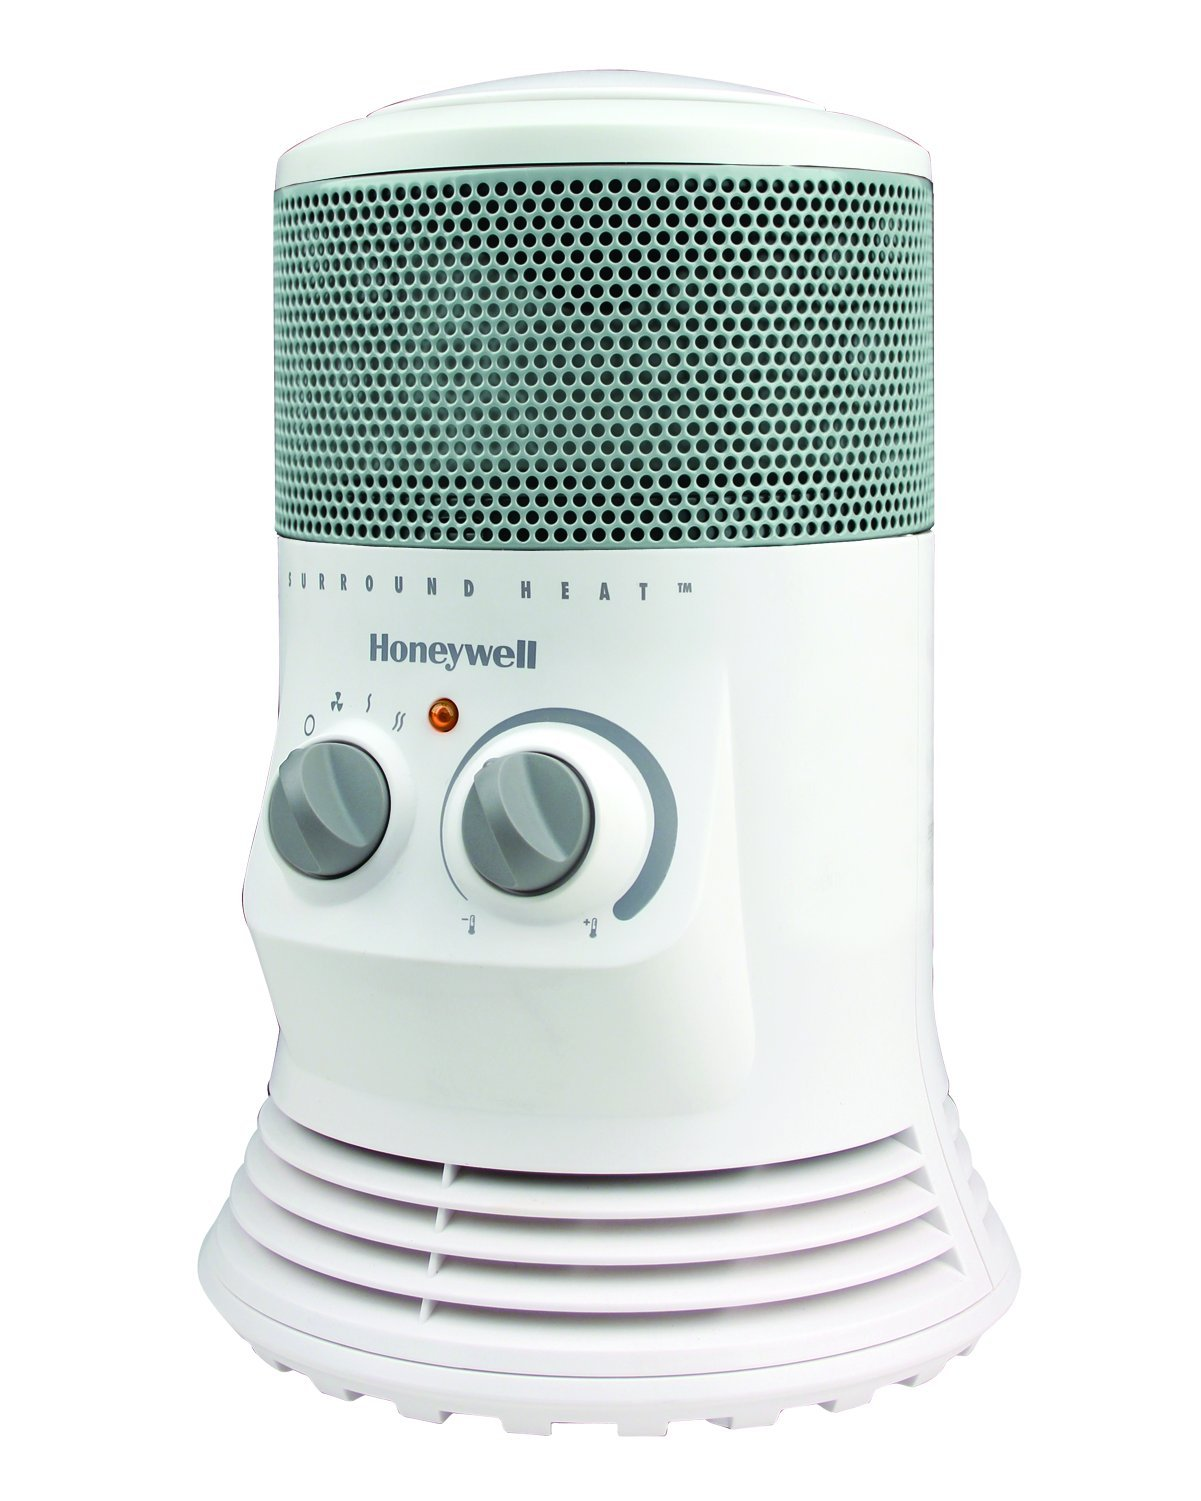 Honeywell 360 degree Surround Fan Forced Whole Room Heater - White